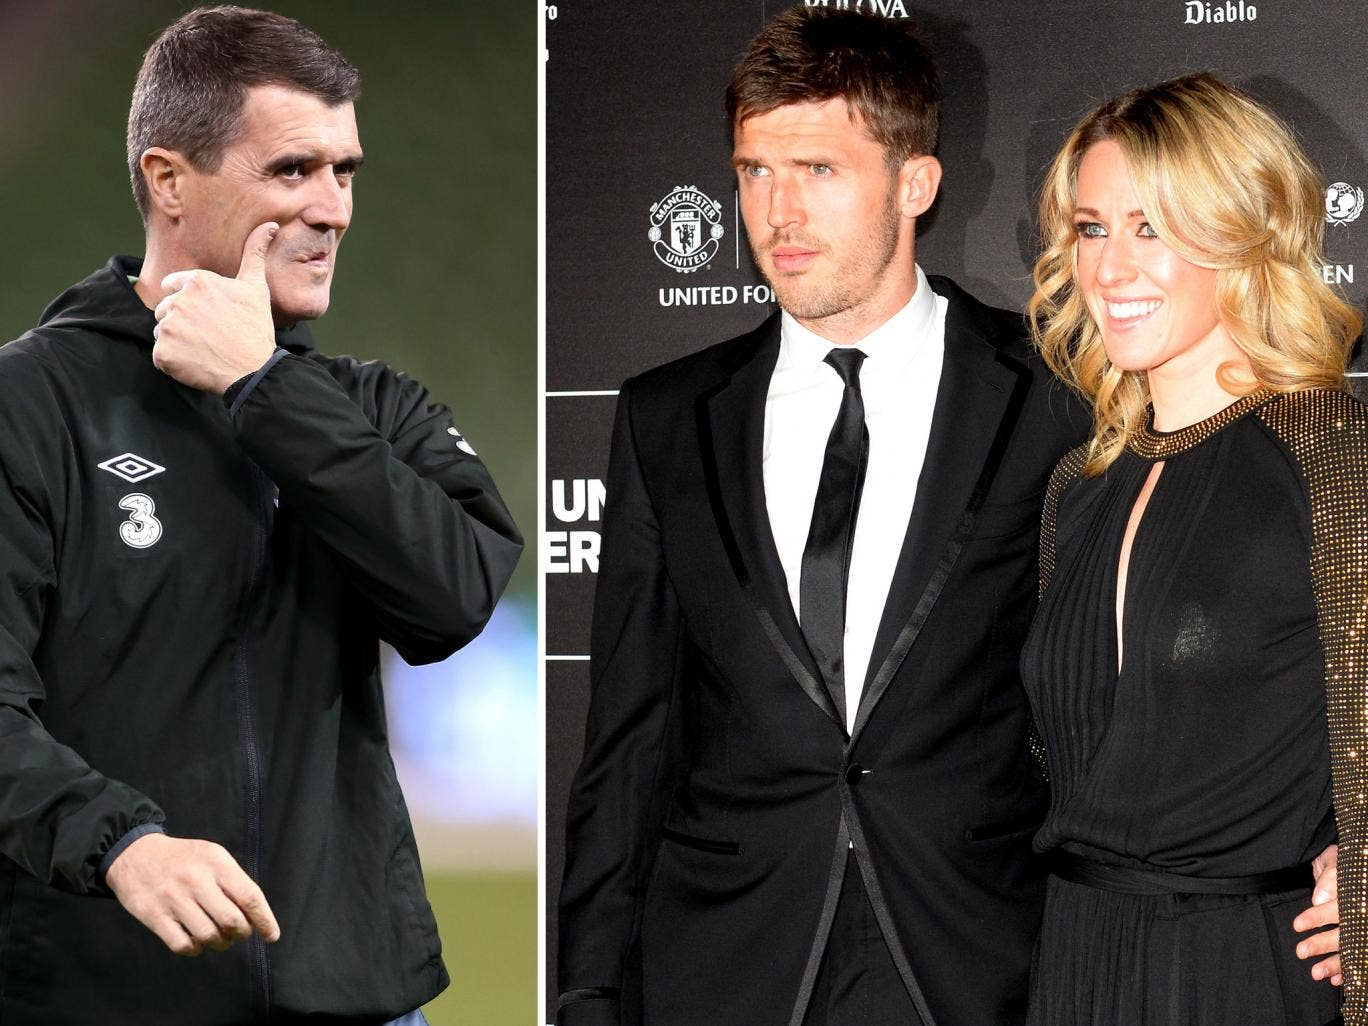 Roy Keane derided Michael Carrick for giving a 'flat' interview, which provoked his wife, Lisa